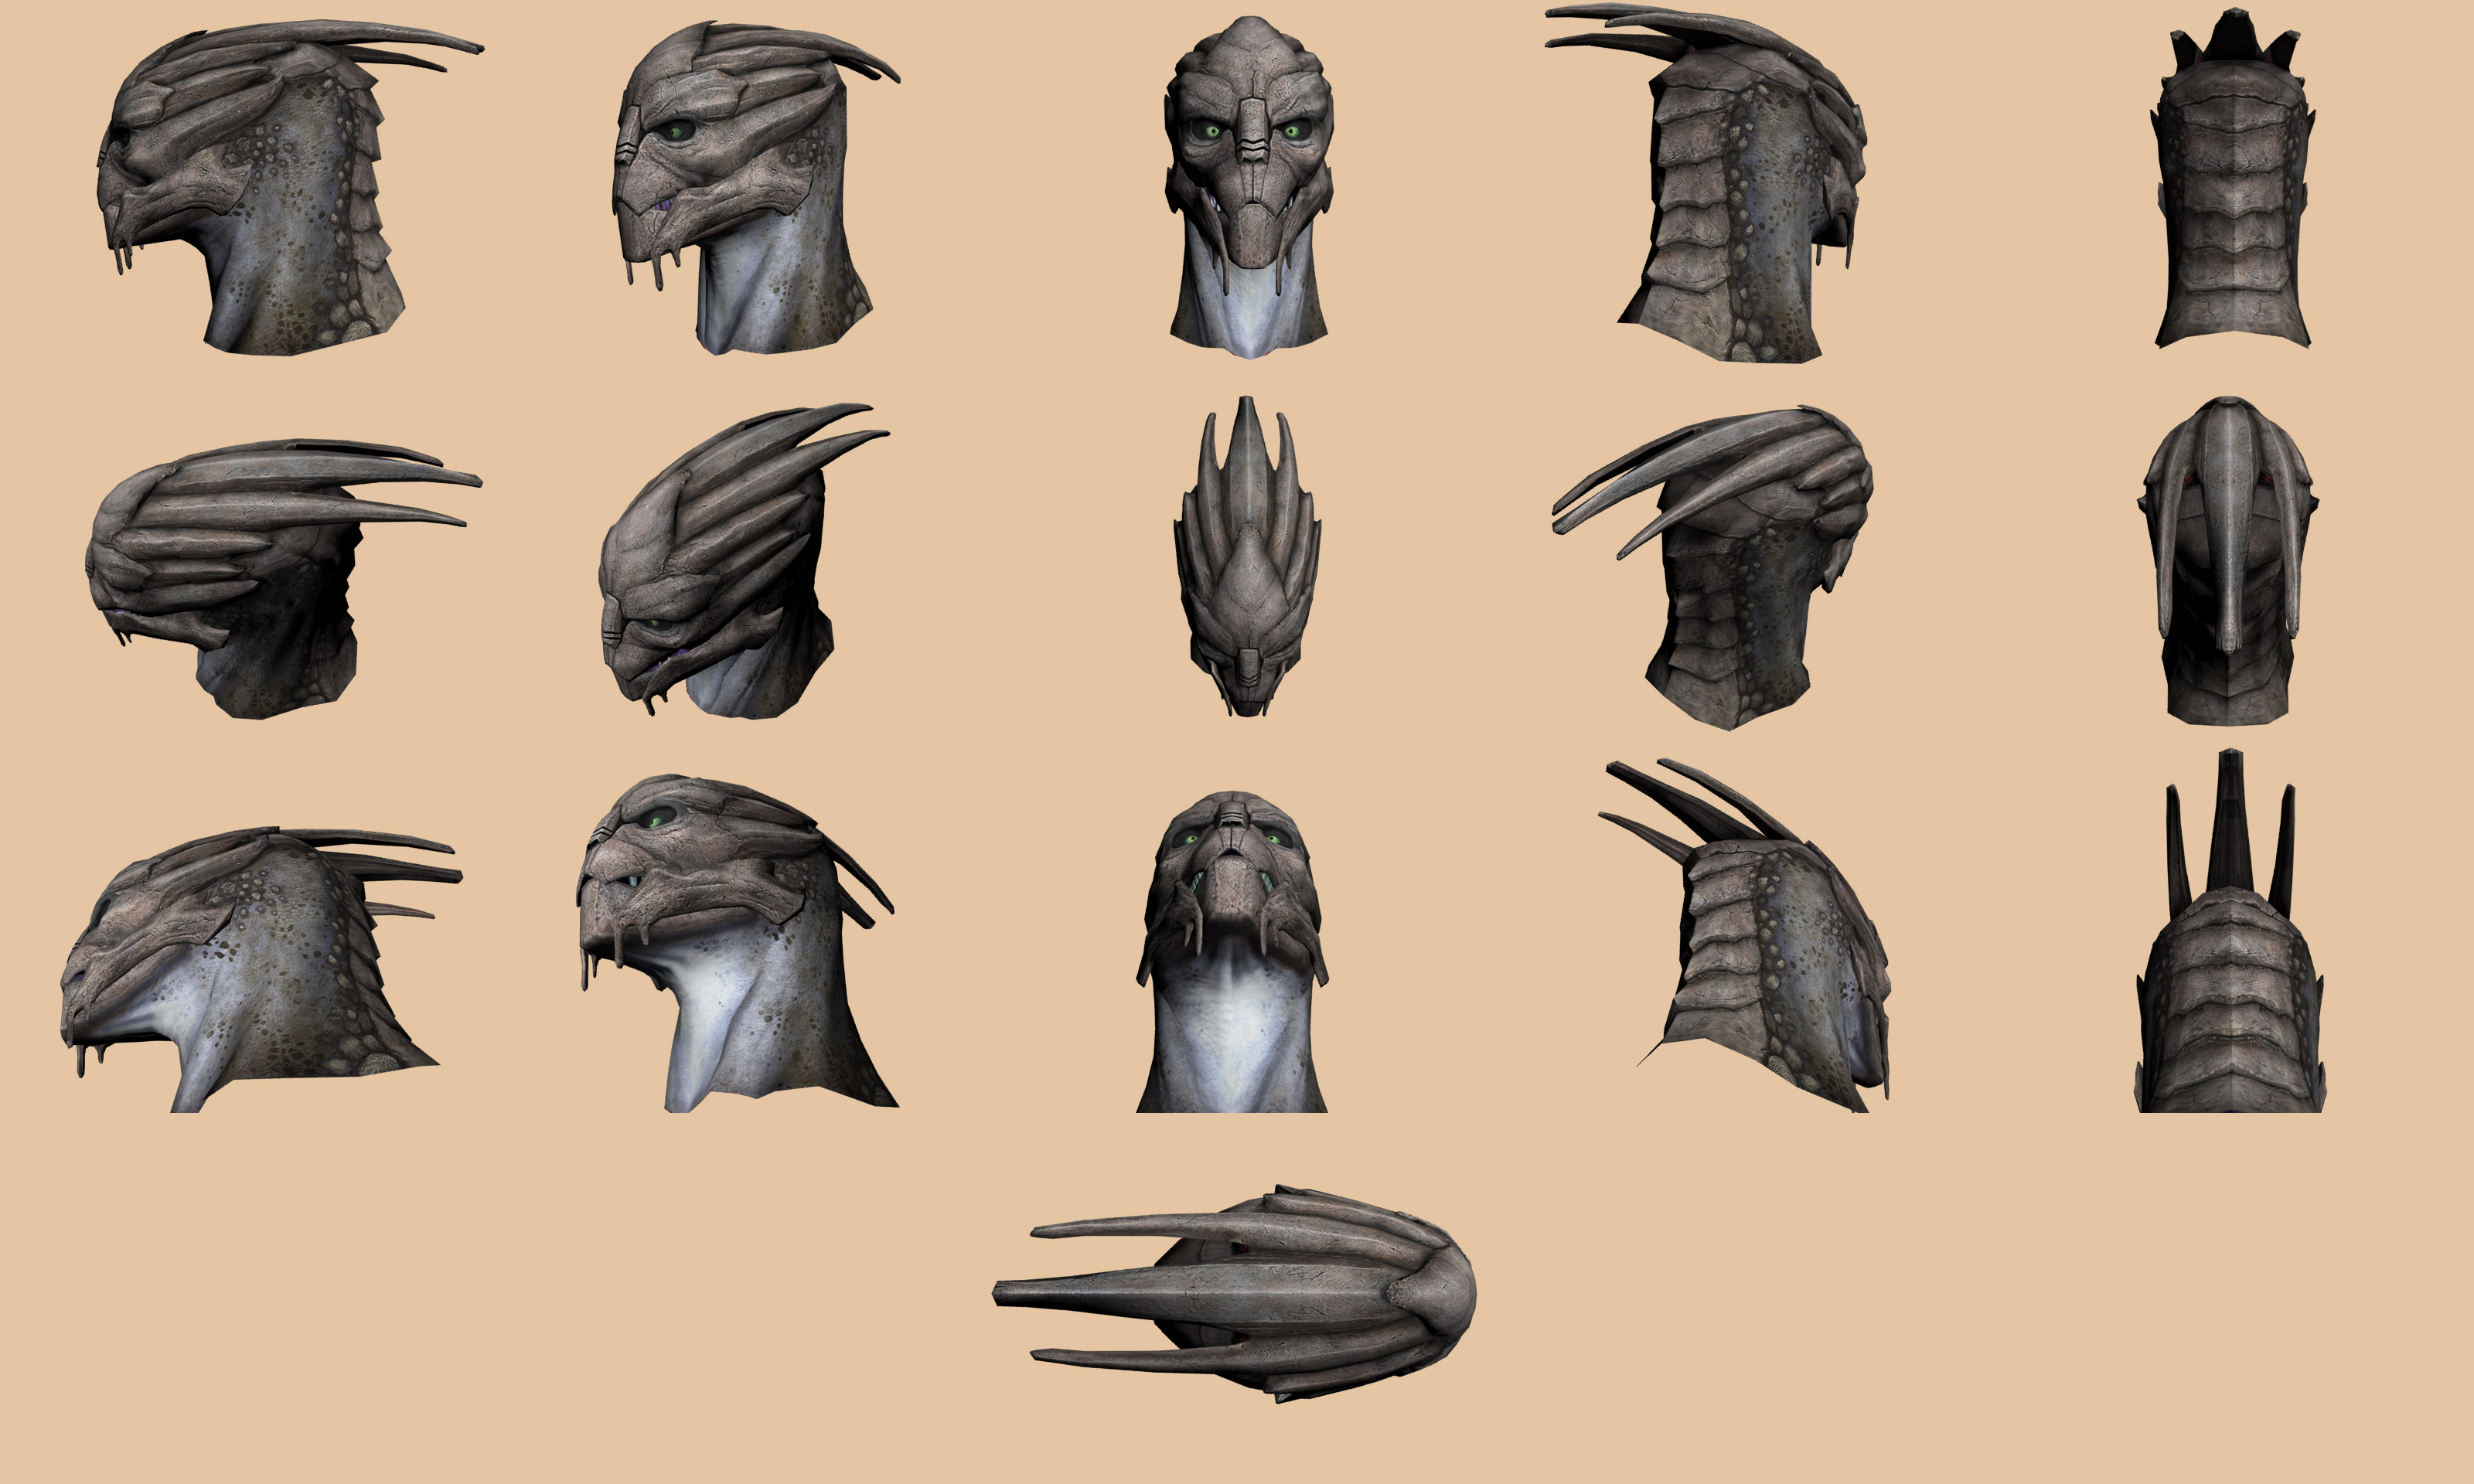 Gallery images and information: Turian Anatomy